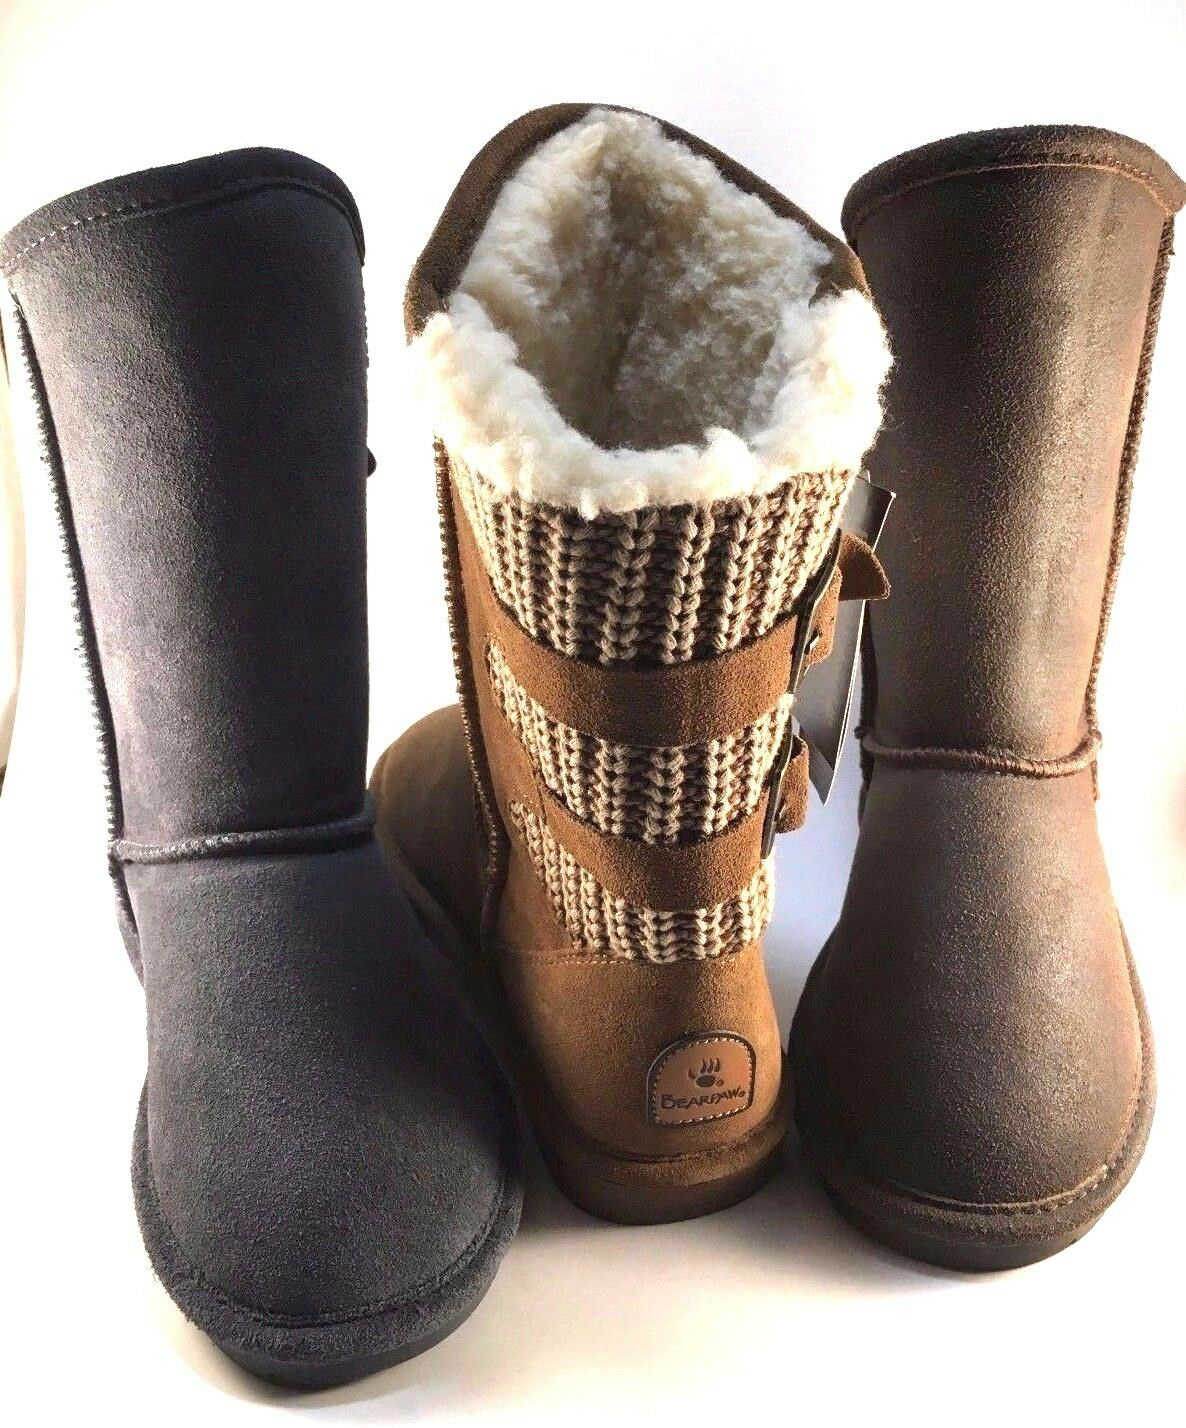 BearPaw Boshie Knit Back Suede Sheepskin Wool Winter Ankle Boots Choose Sz color